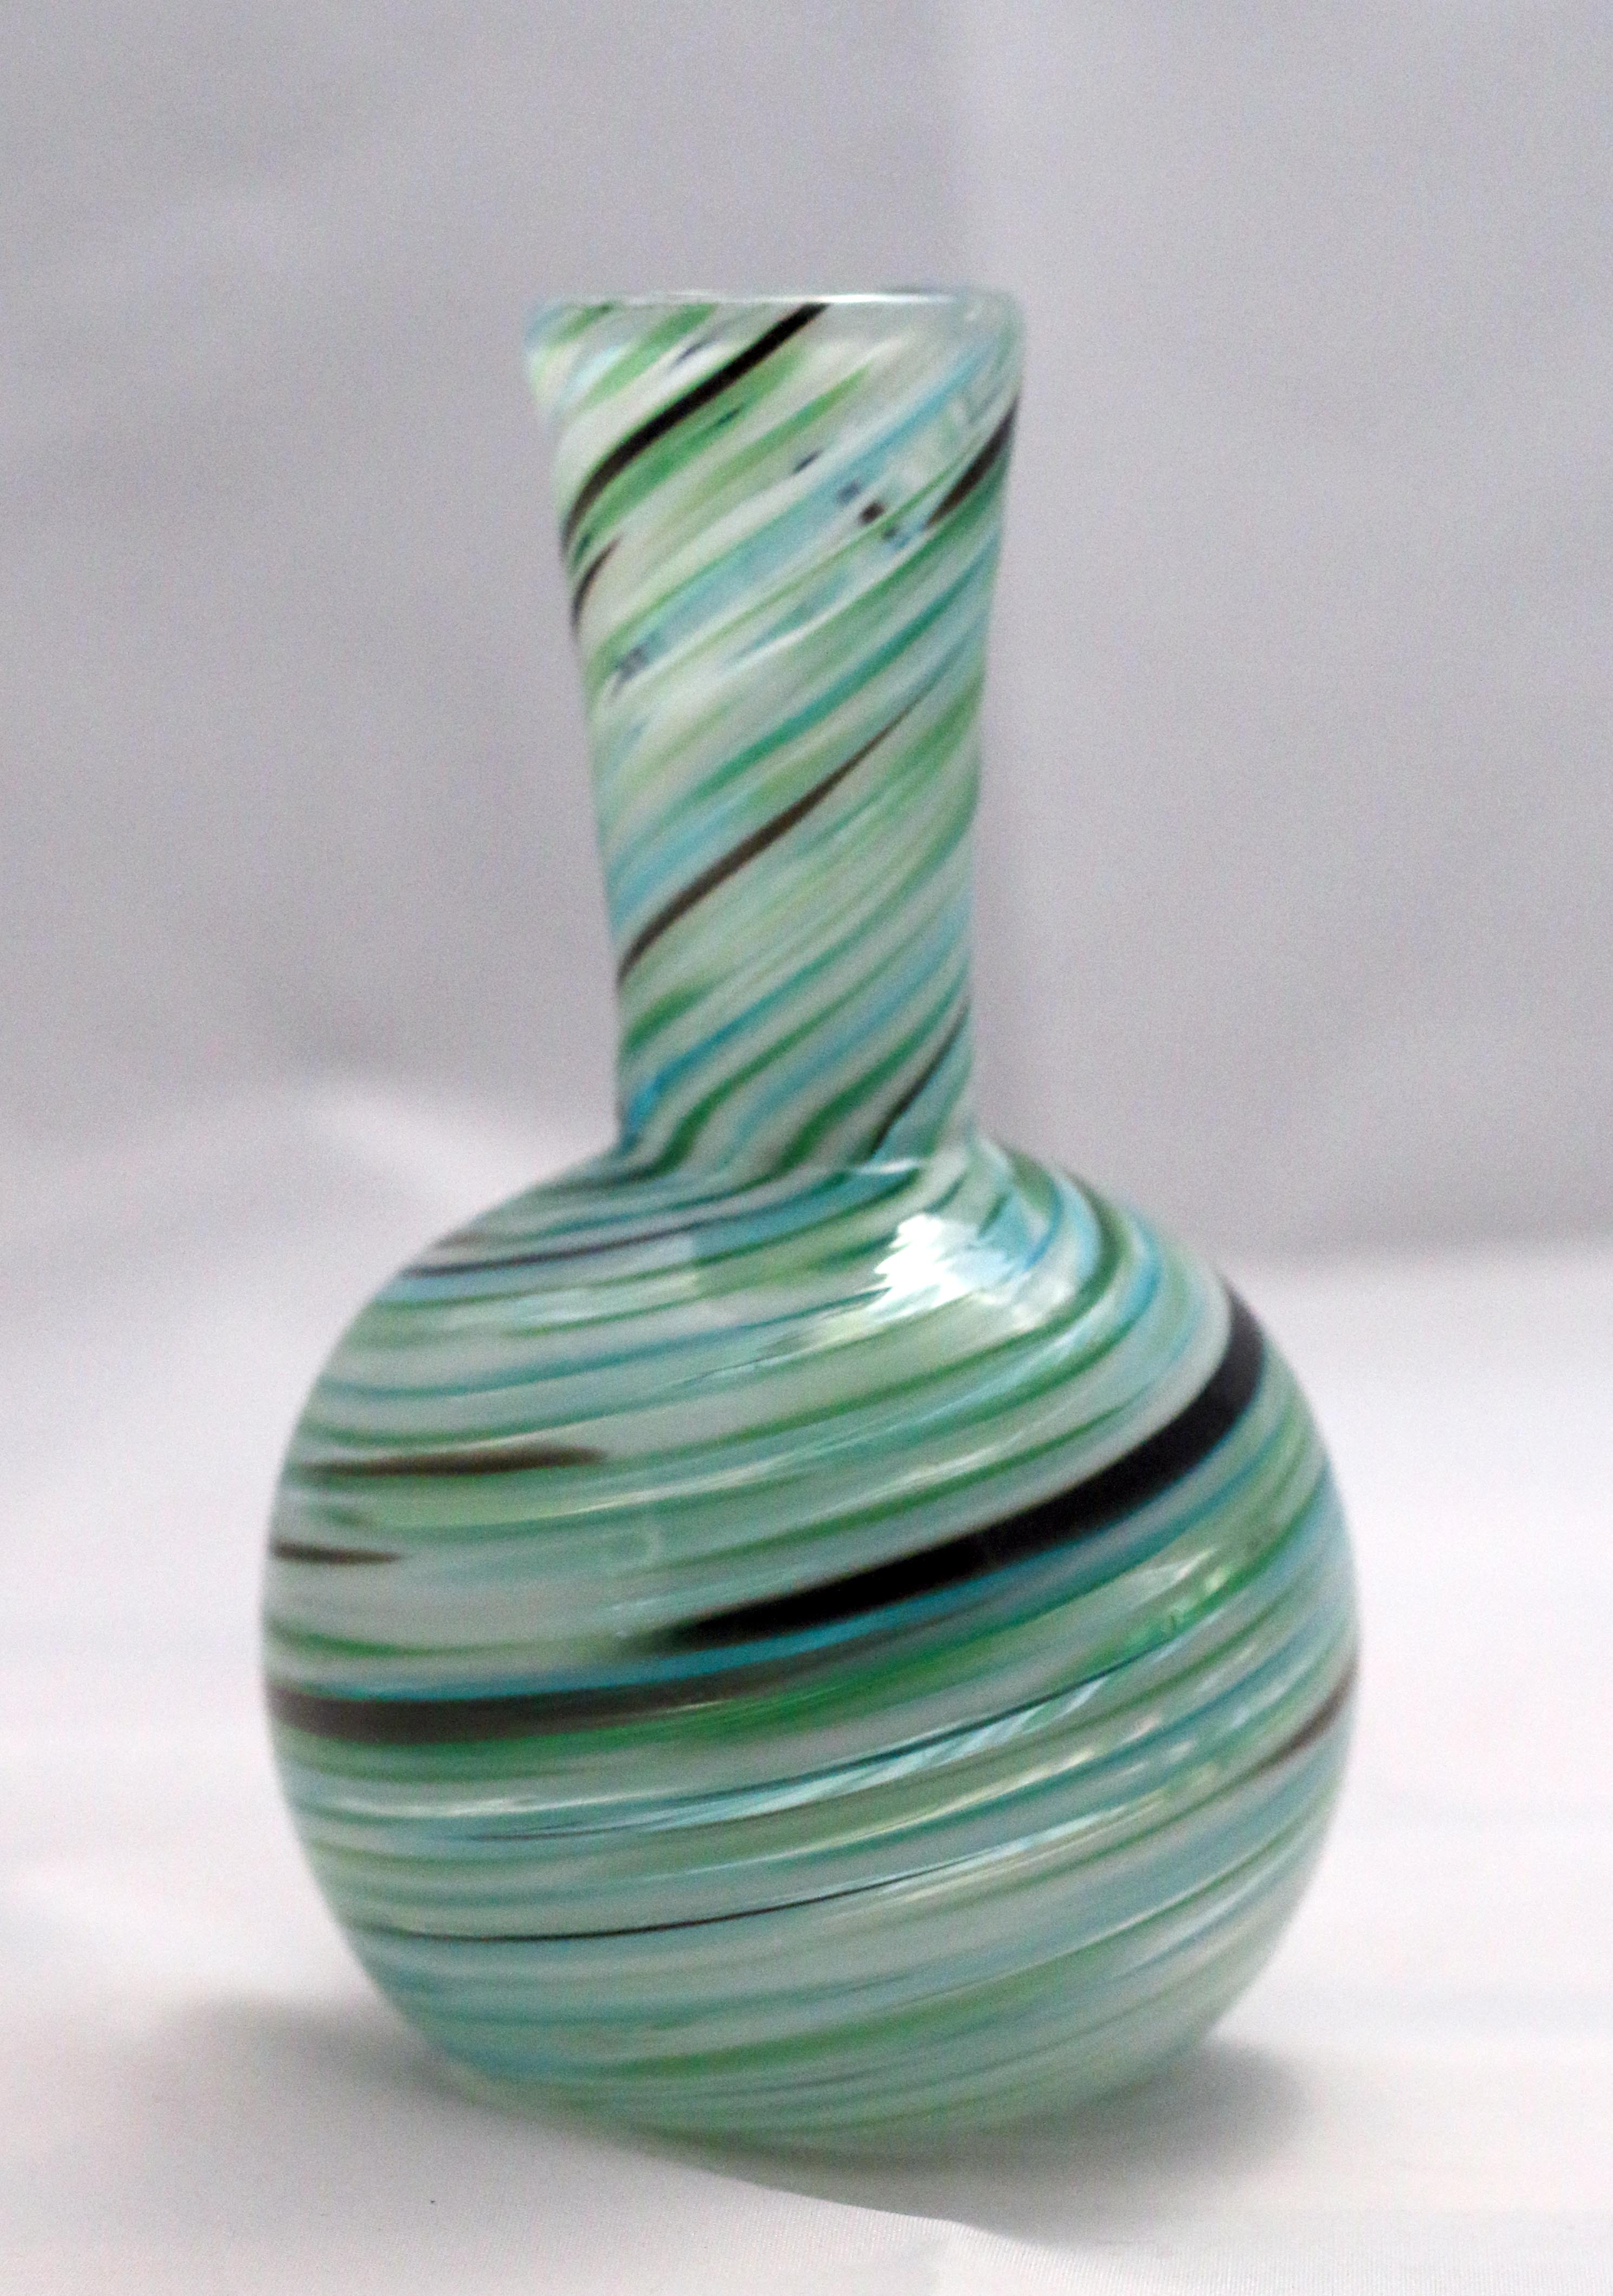 Aqua, green, white and black twist pattern handblown glass bud vase